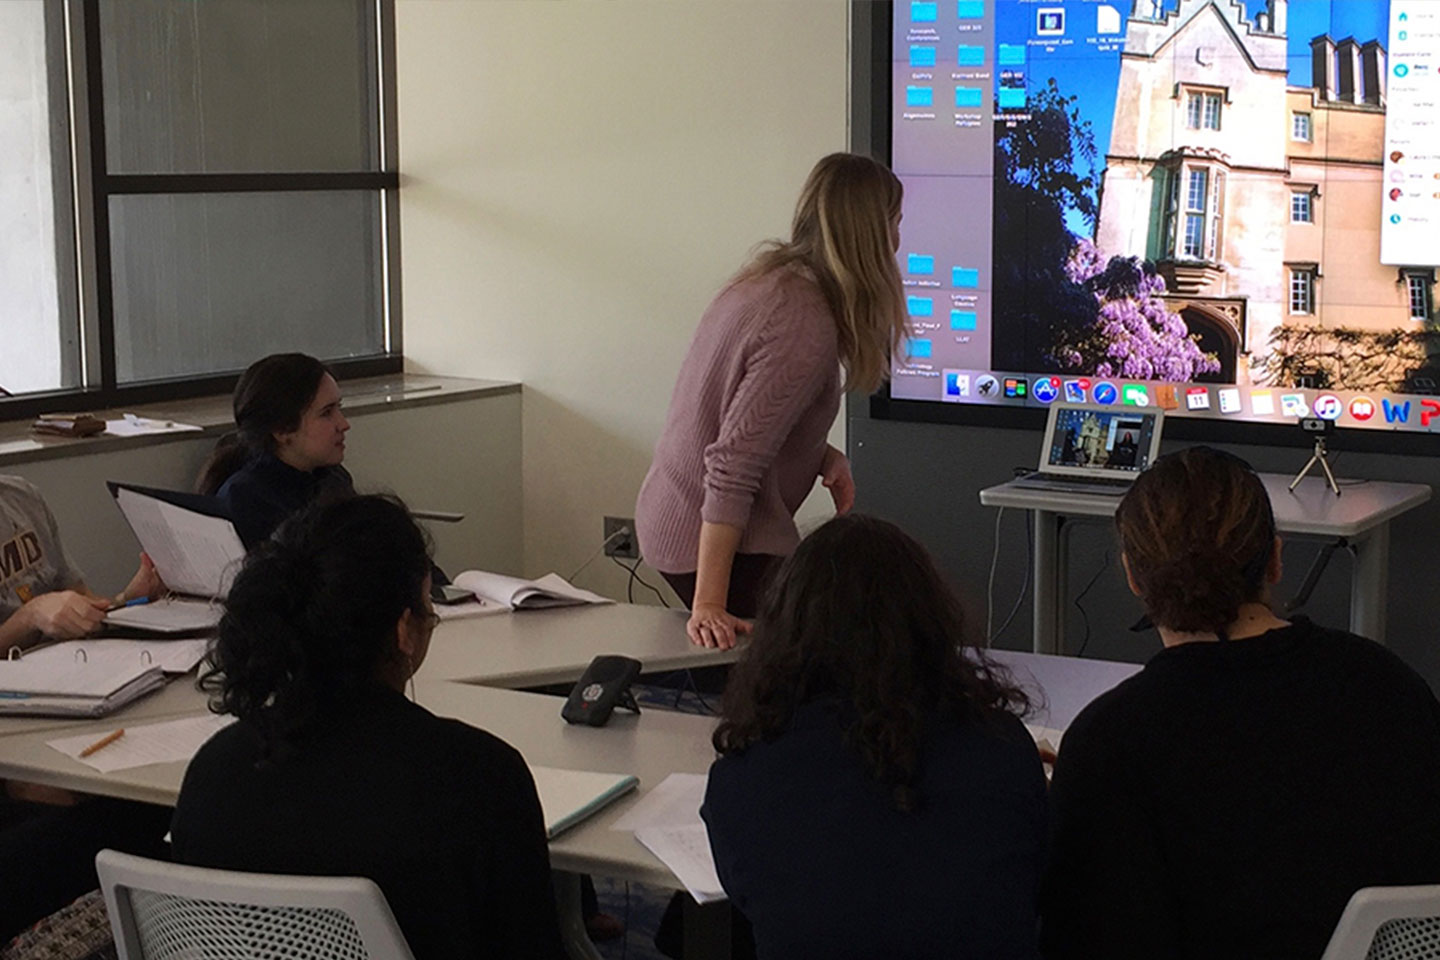 Students in a classroom videoconferencing with another classroom